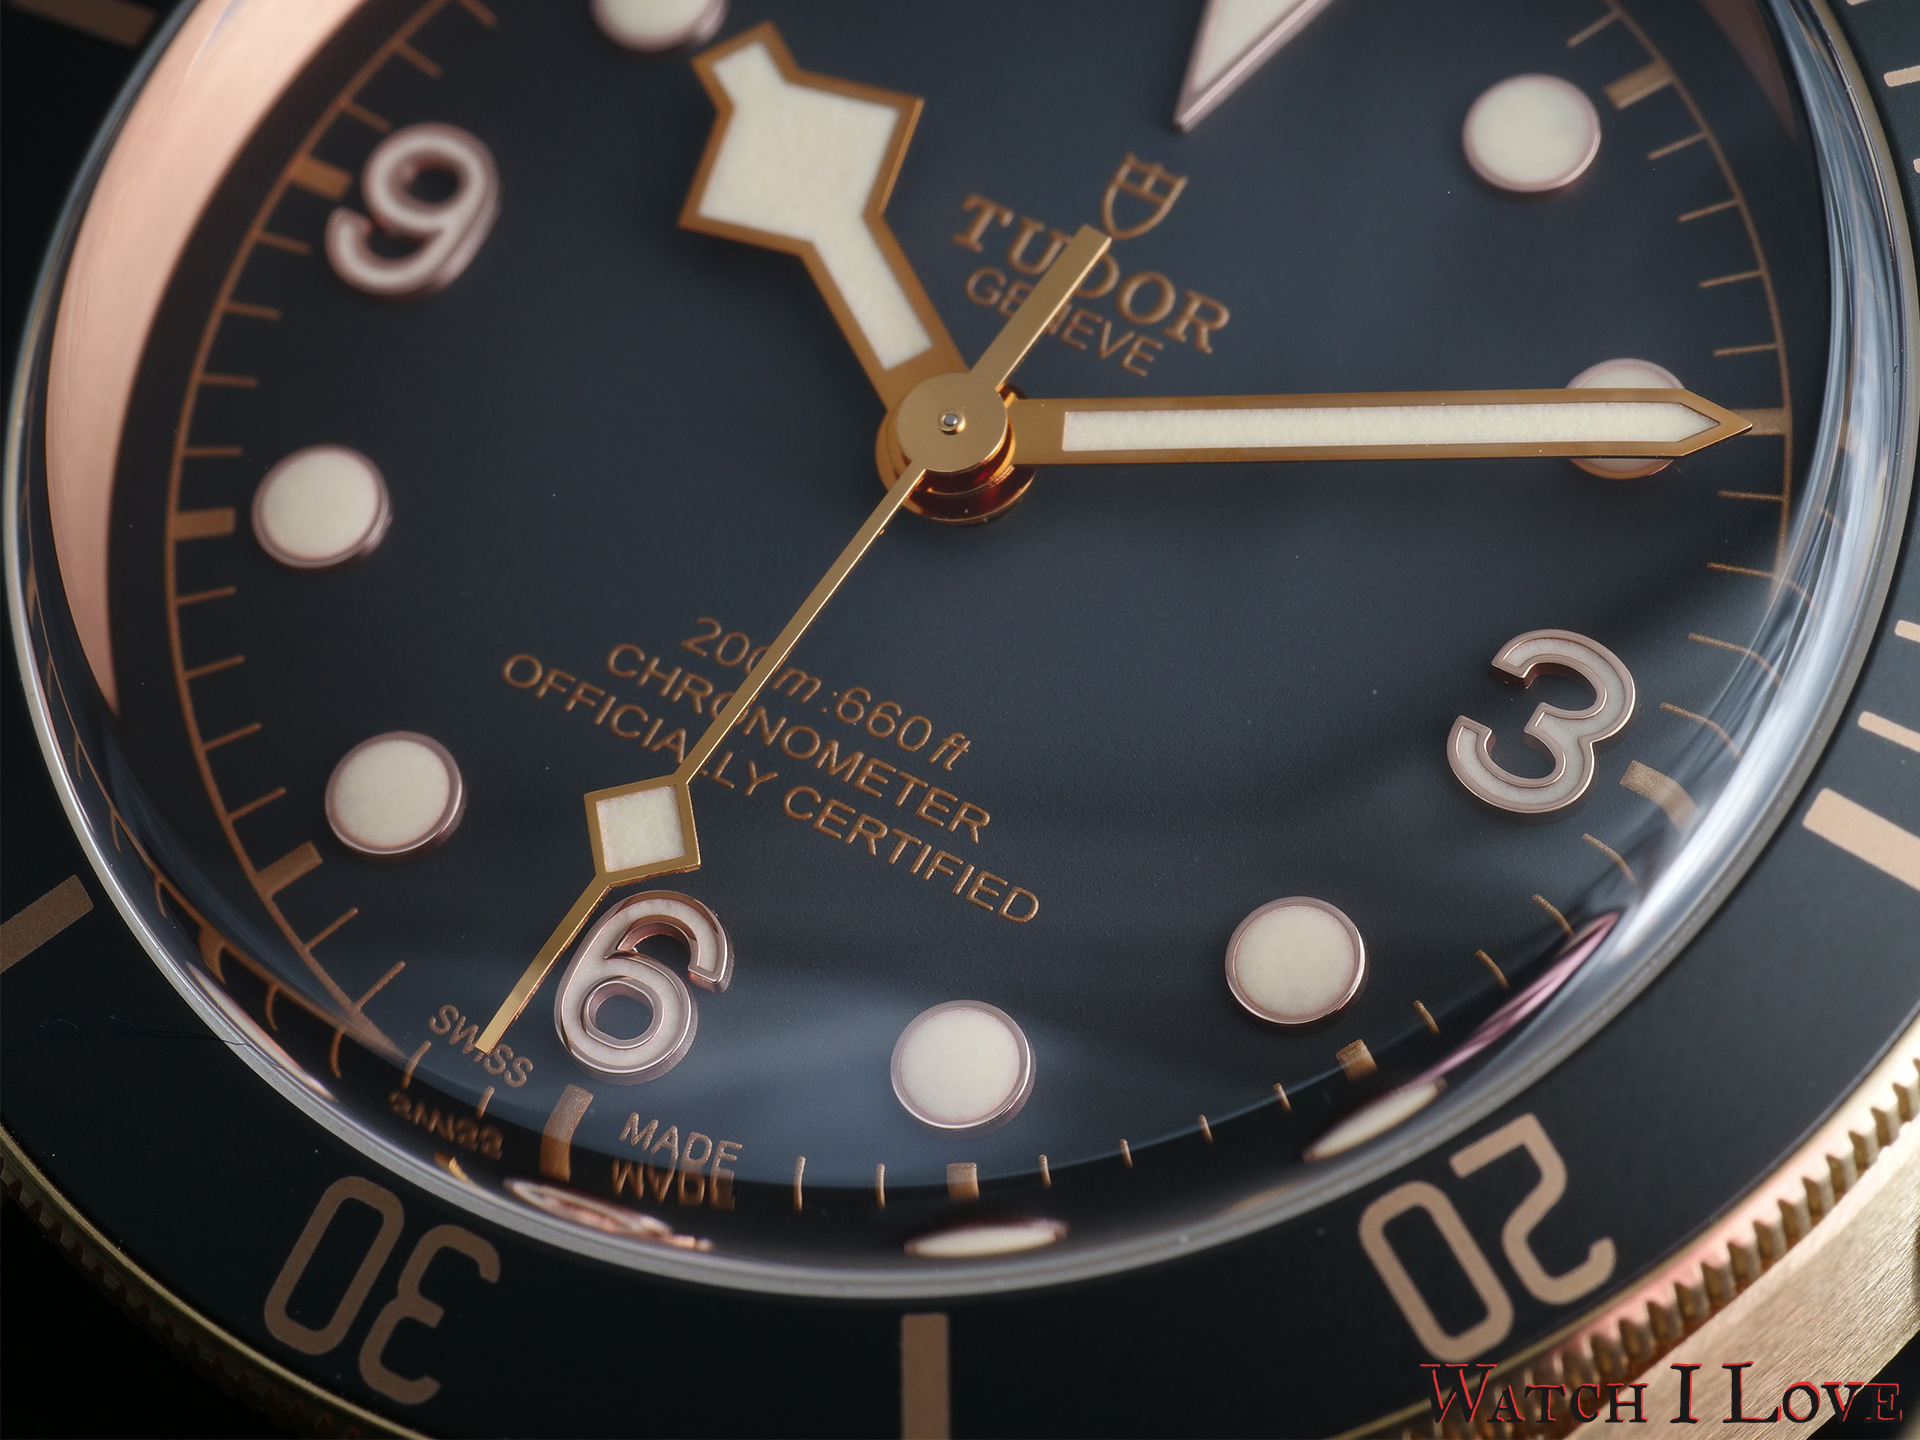 Detail of the lower side of the dial